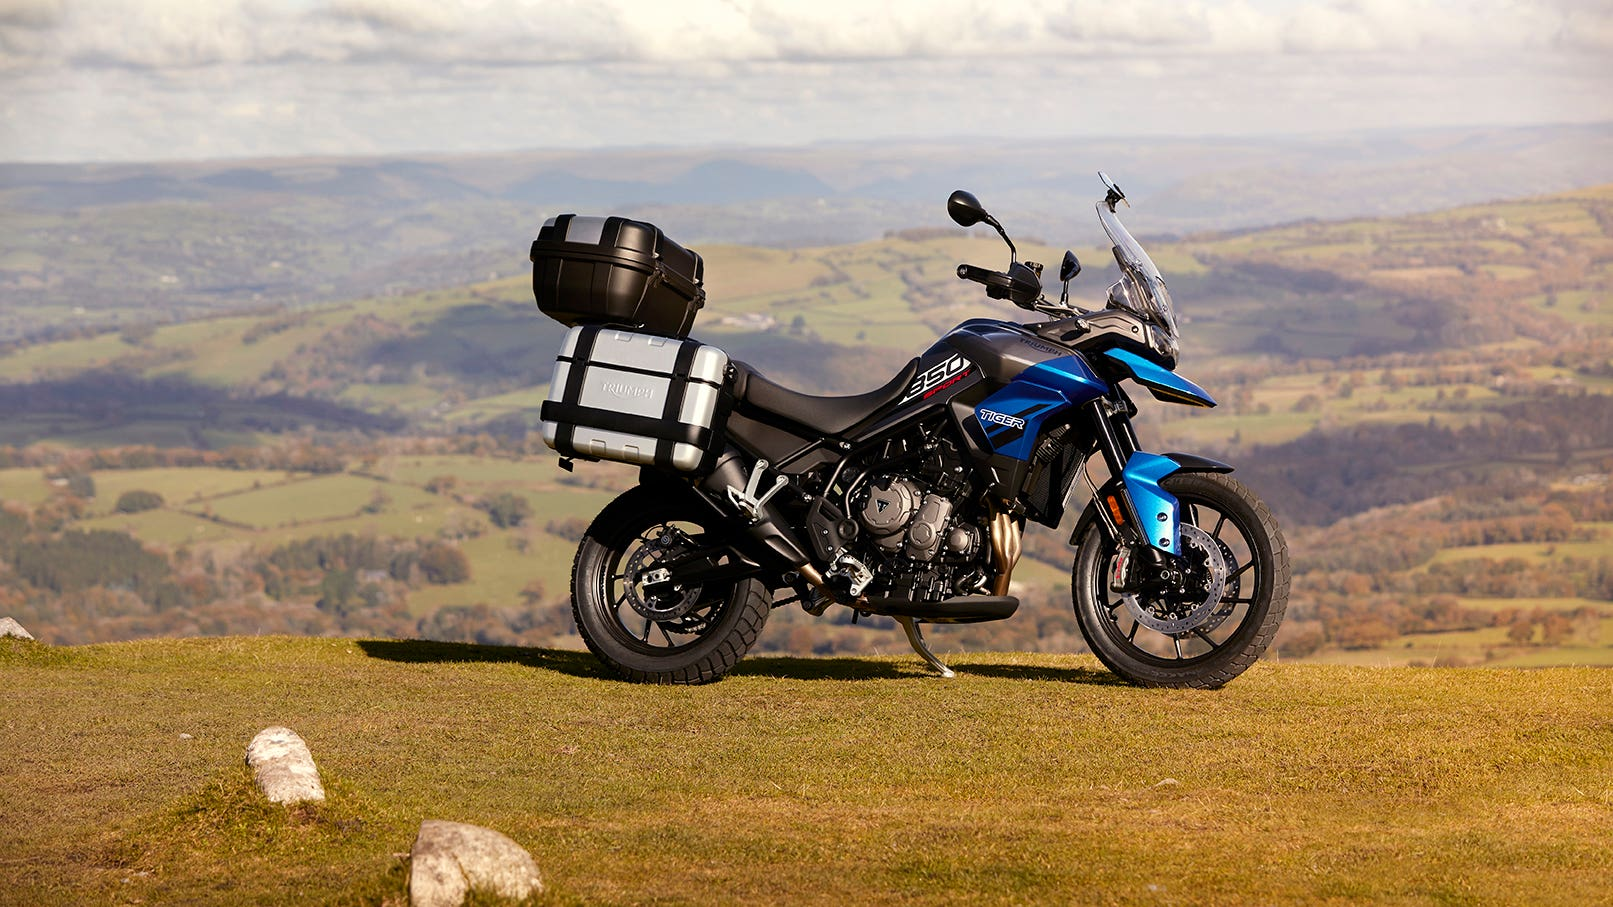 Triumph introduces new entry-level Tiger 850 Sport